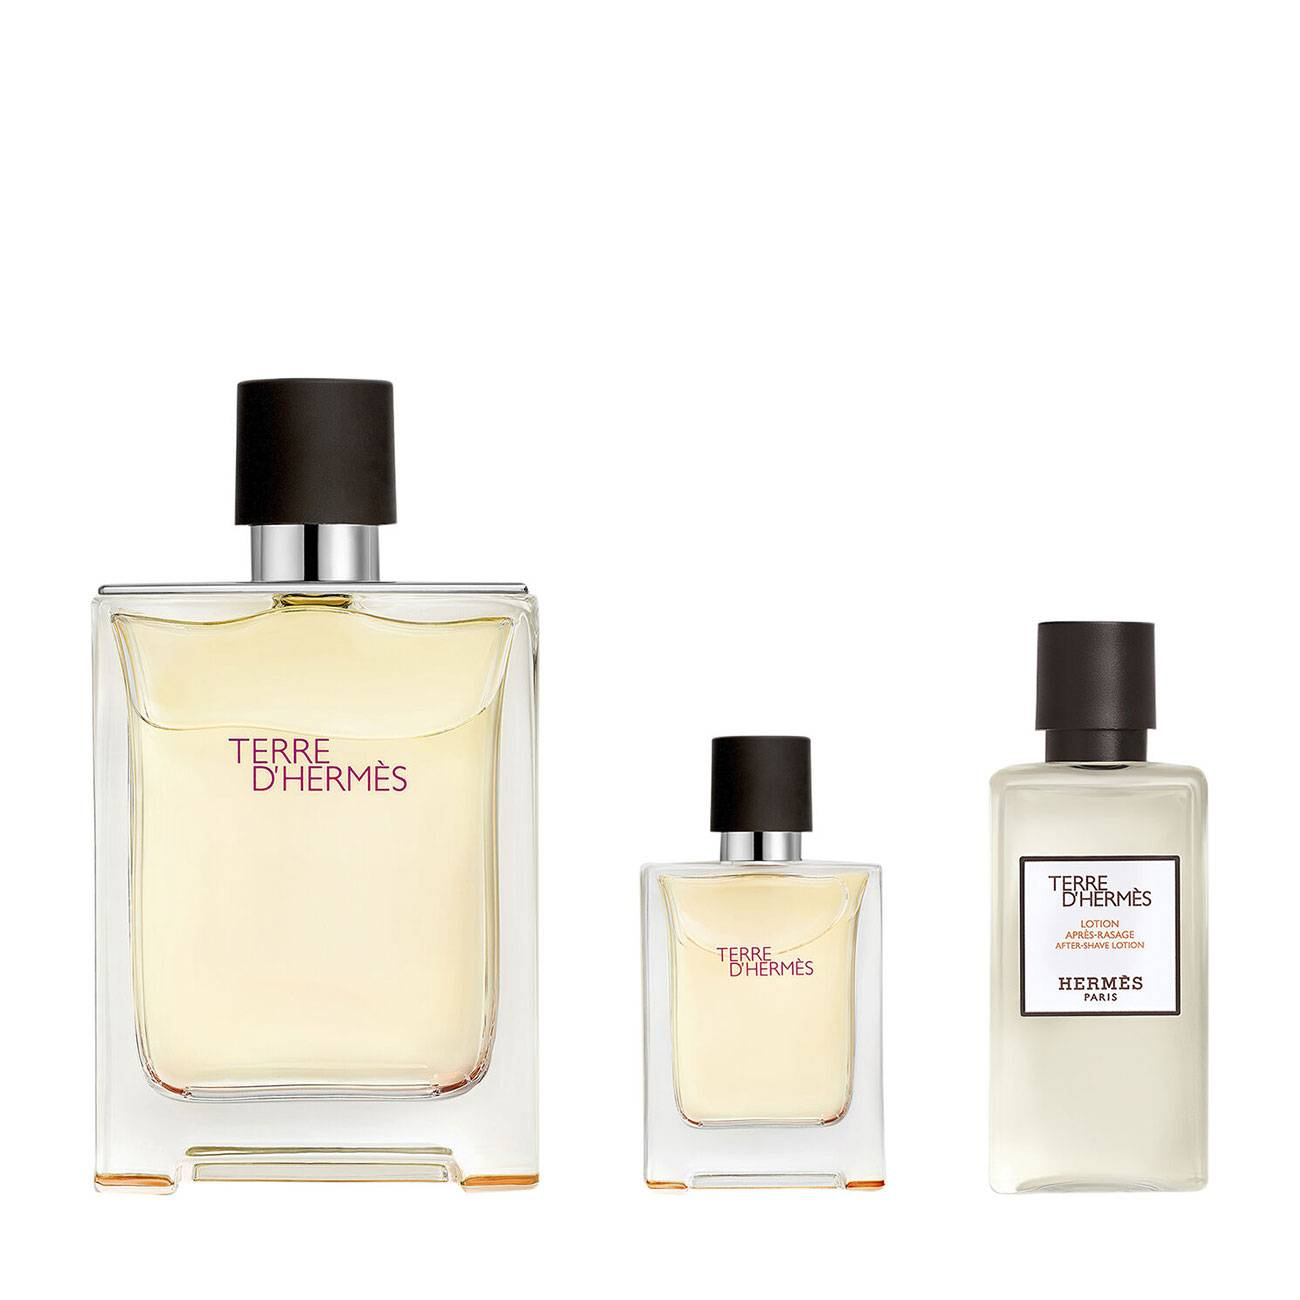 TERRE D'HERMÈS SET 152.5ml imagine